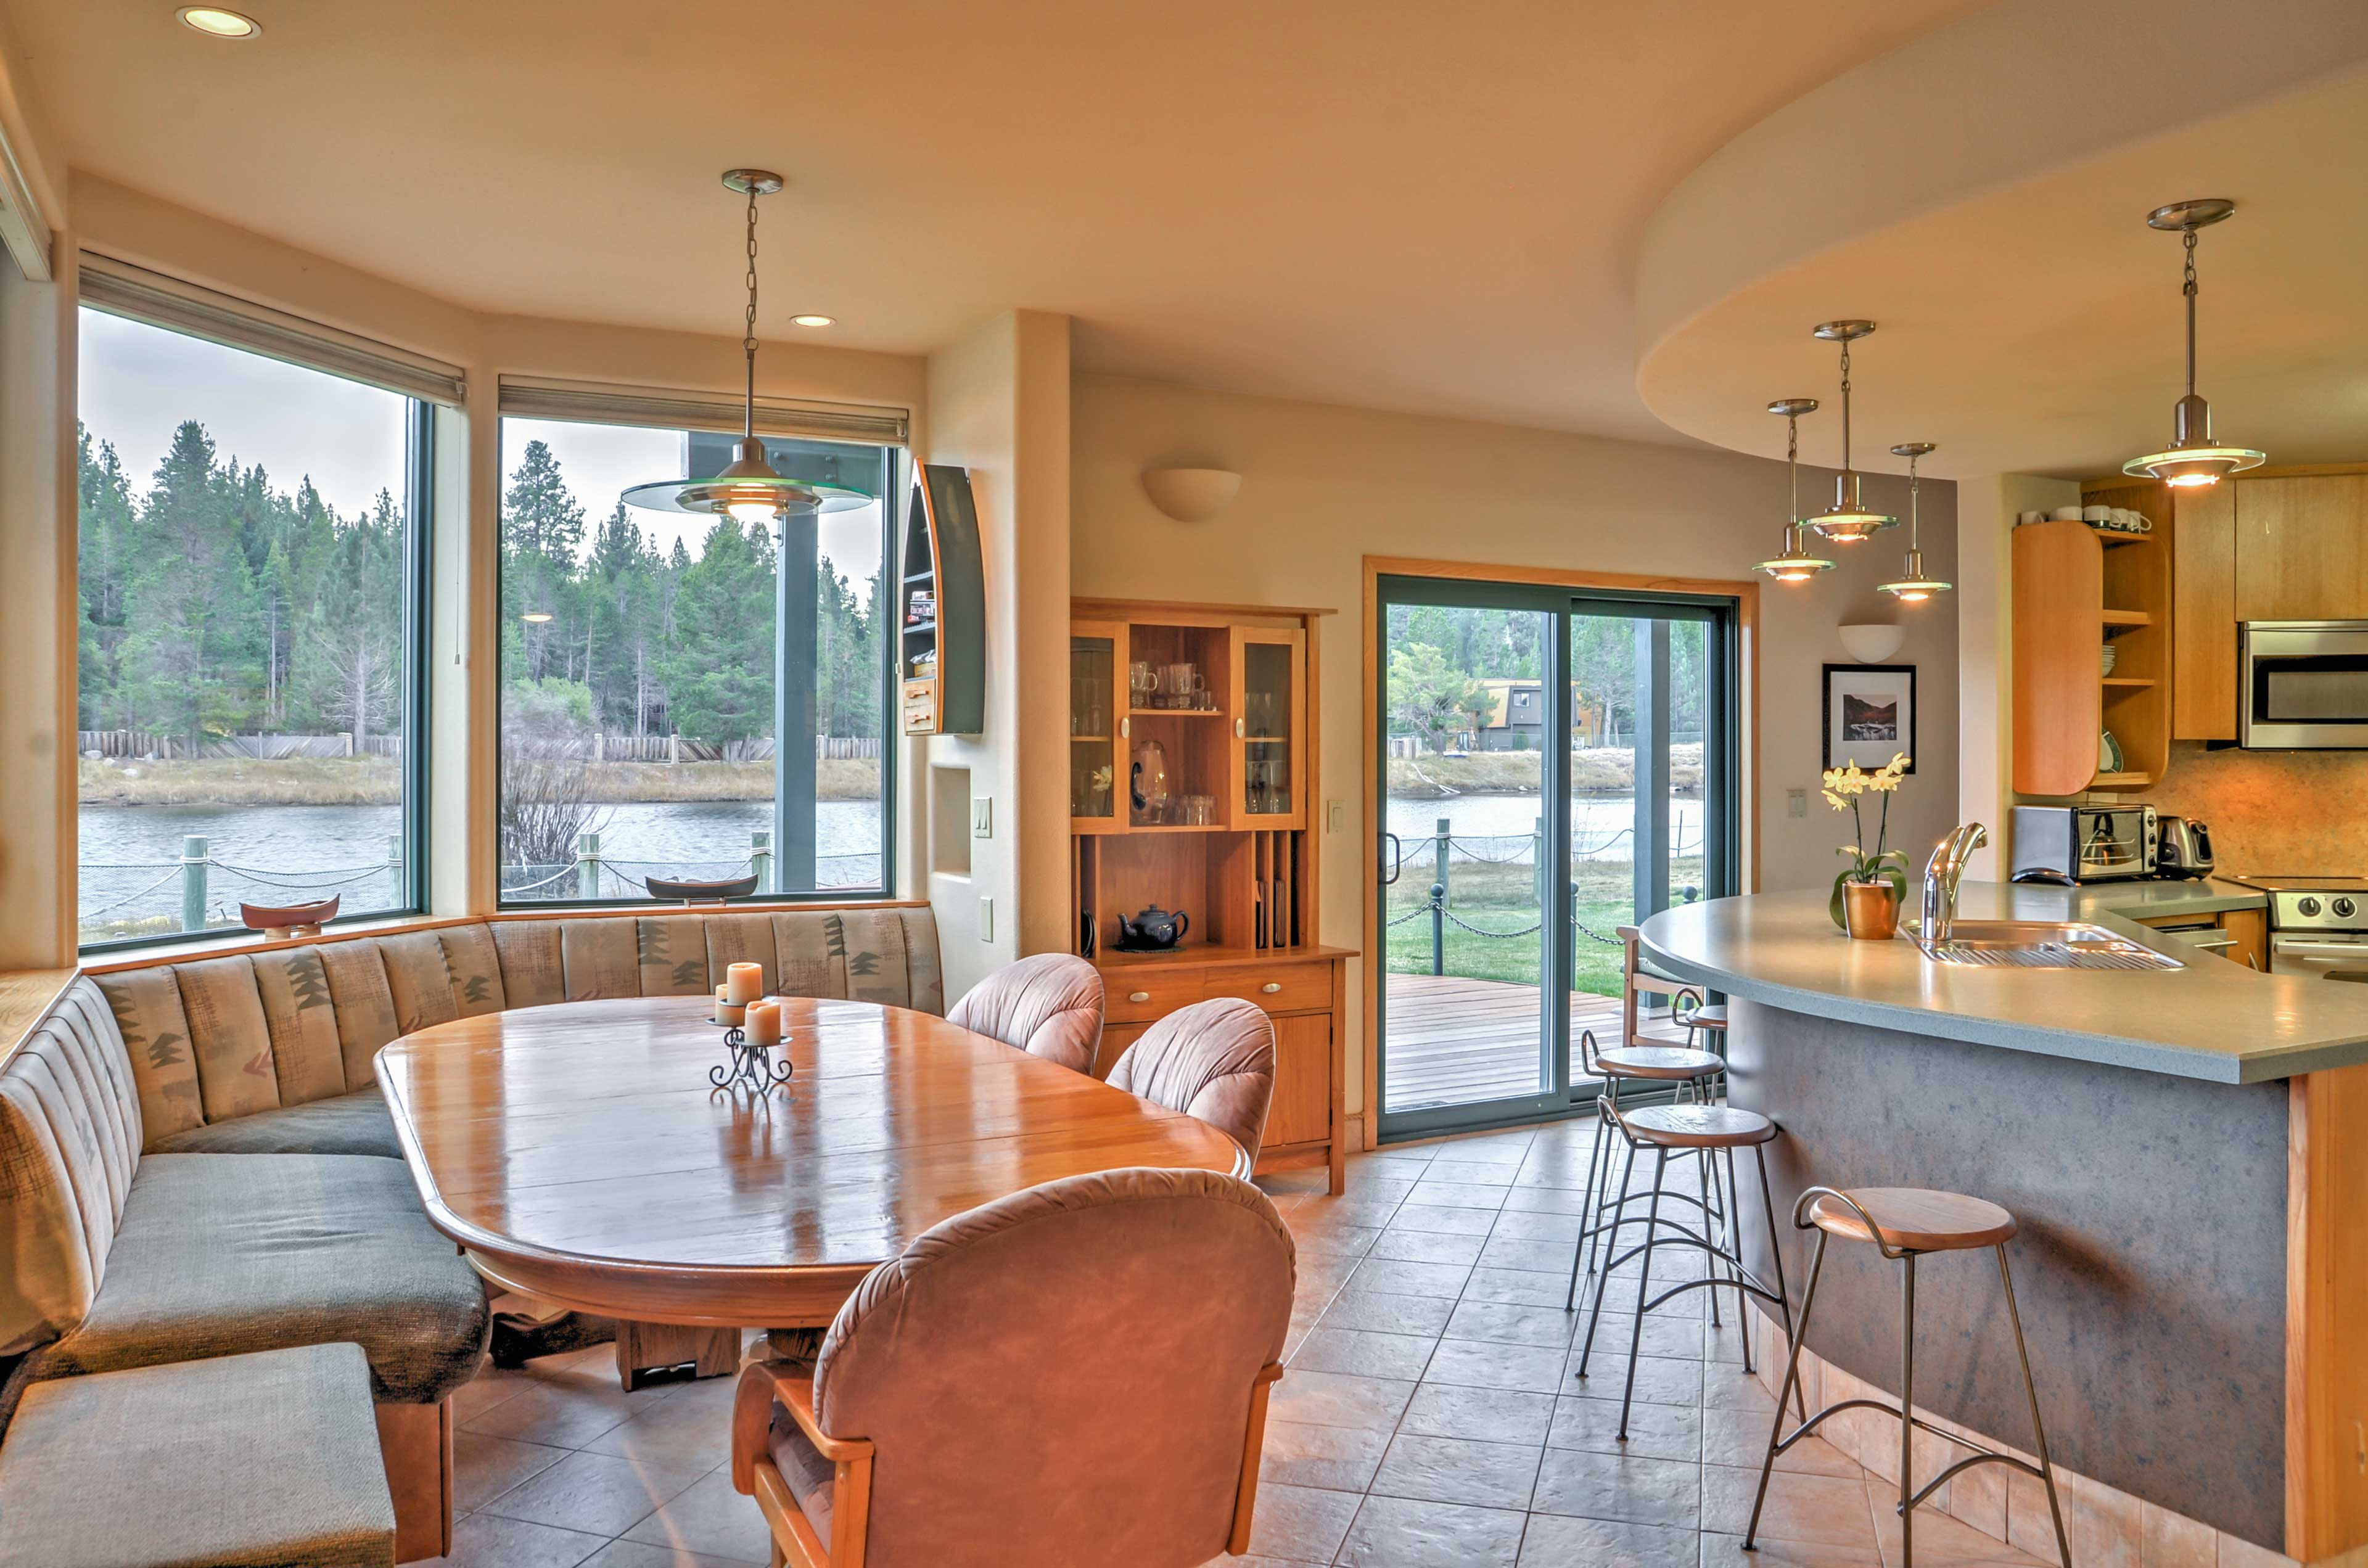 This home boasts 3,000 square feet of beautifully appointed living space.